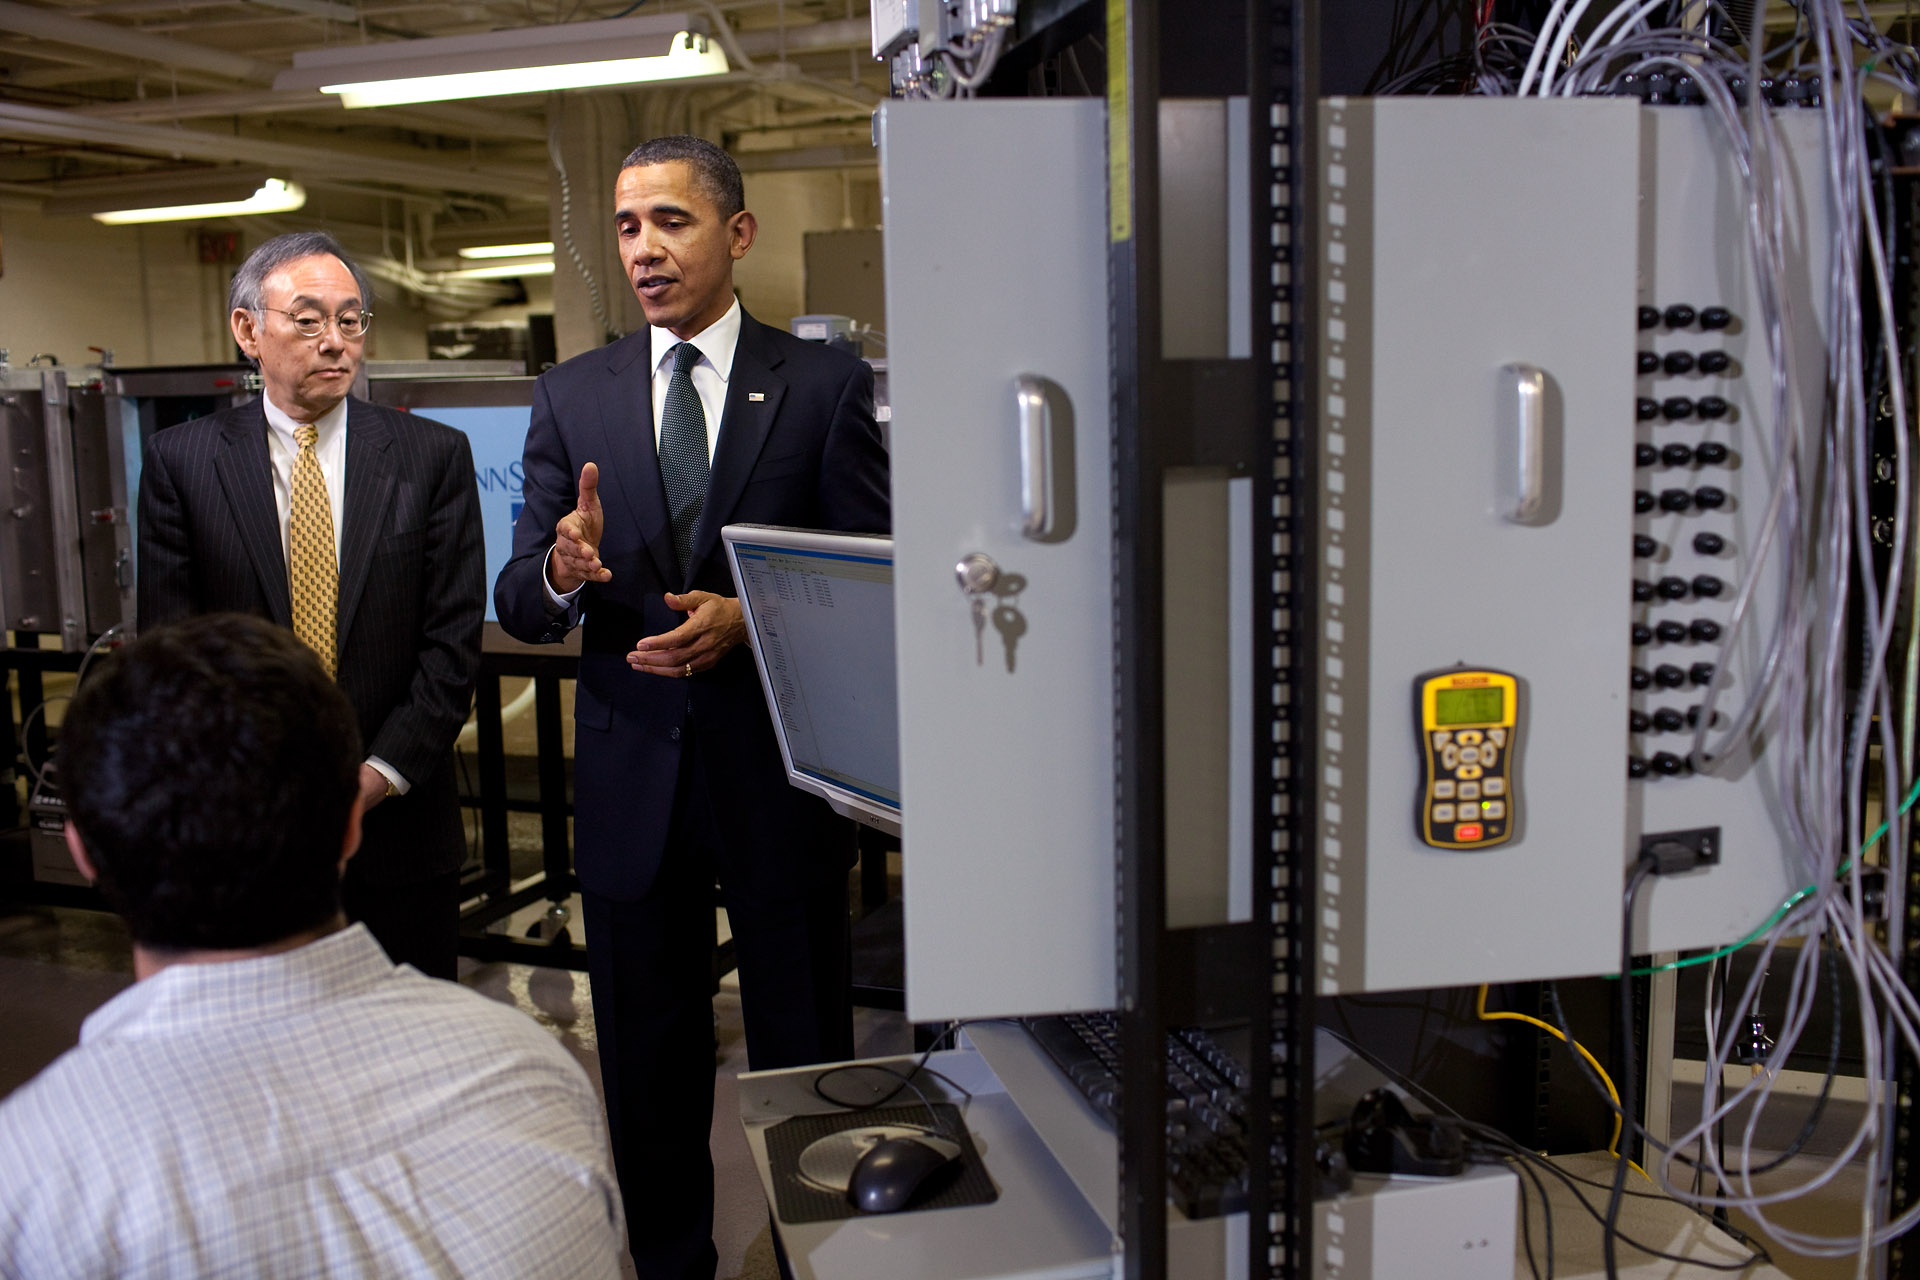 President Obama and Energy Secretary Chu Tour Innovation Hub in State College